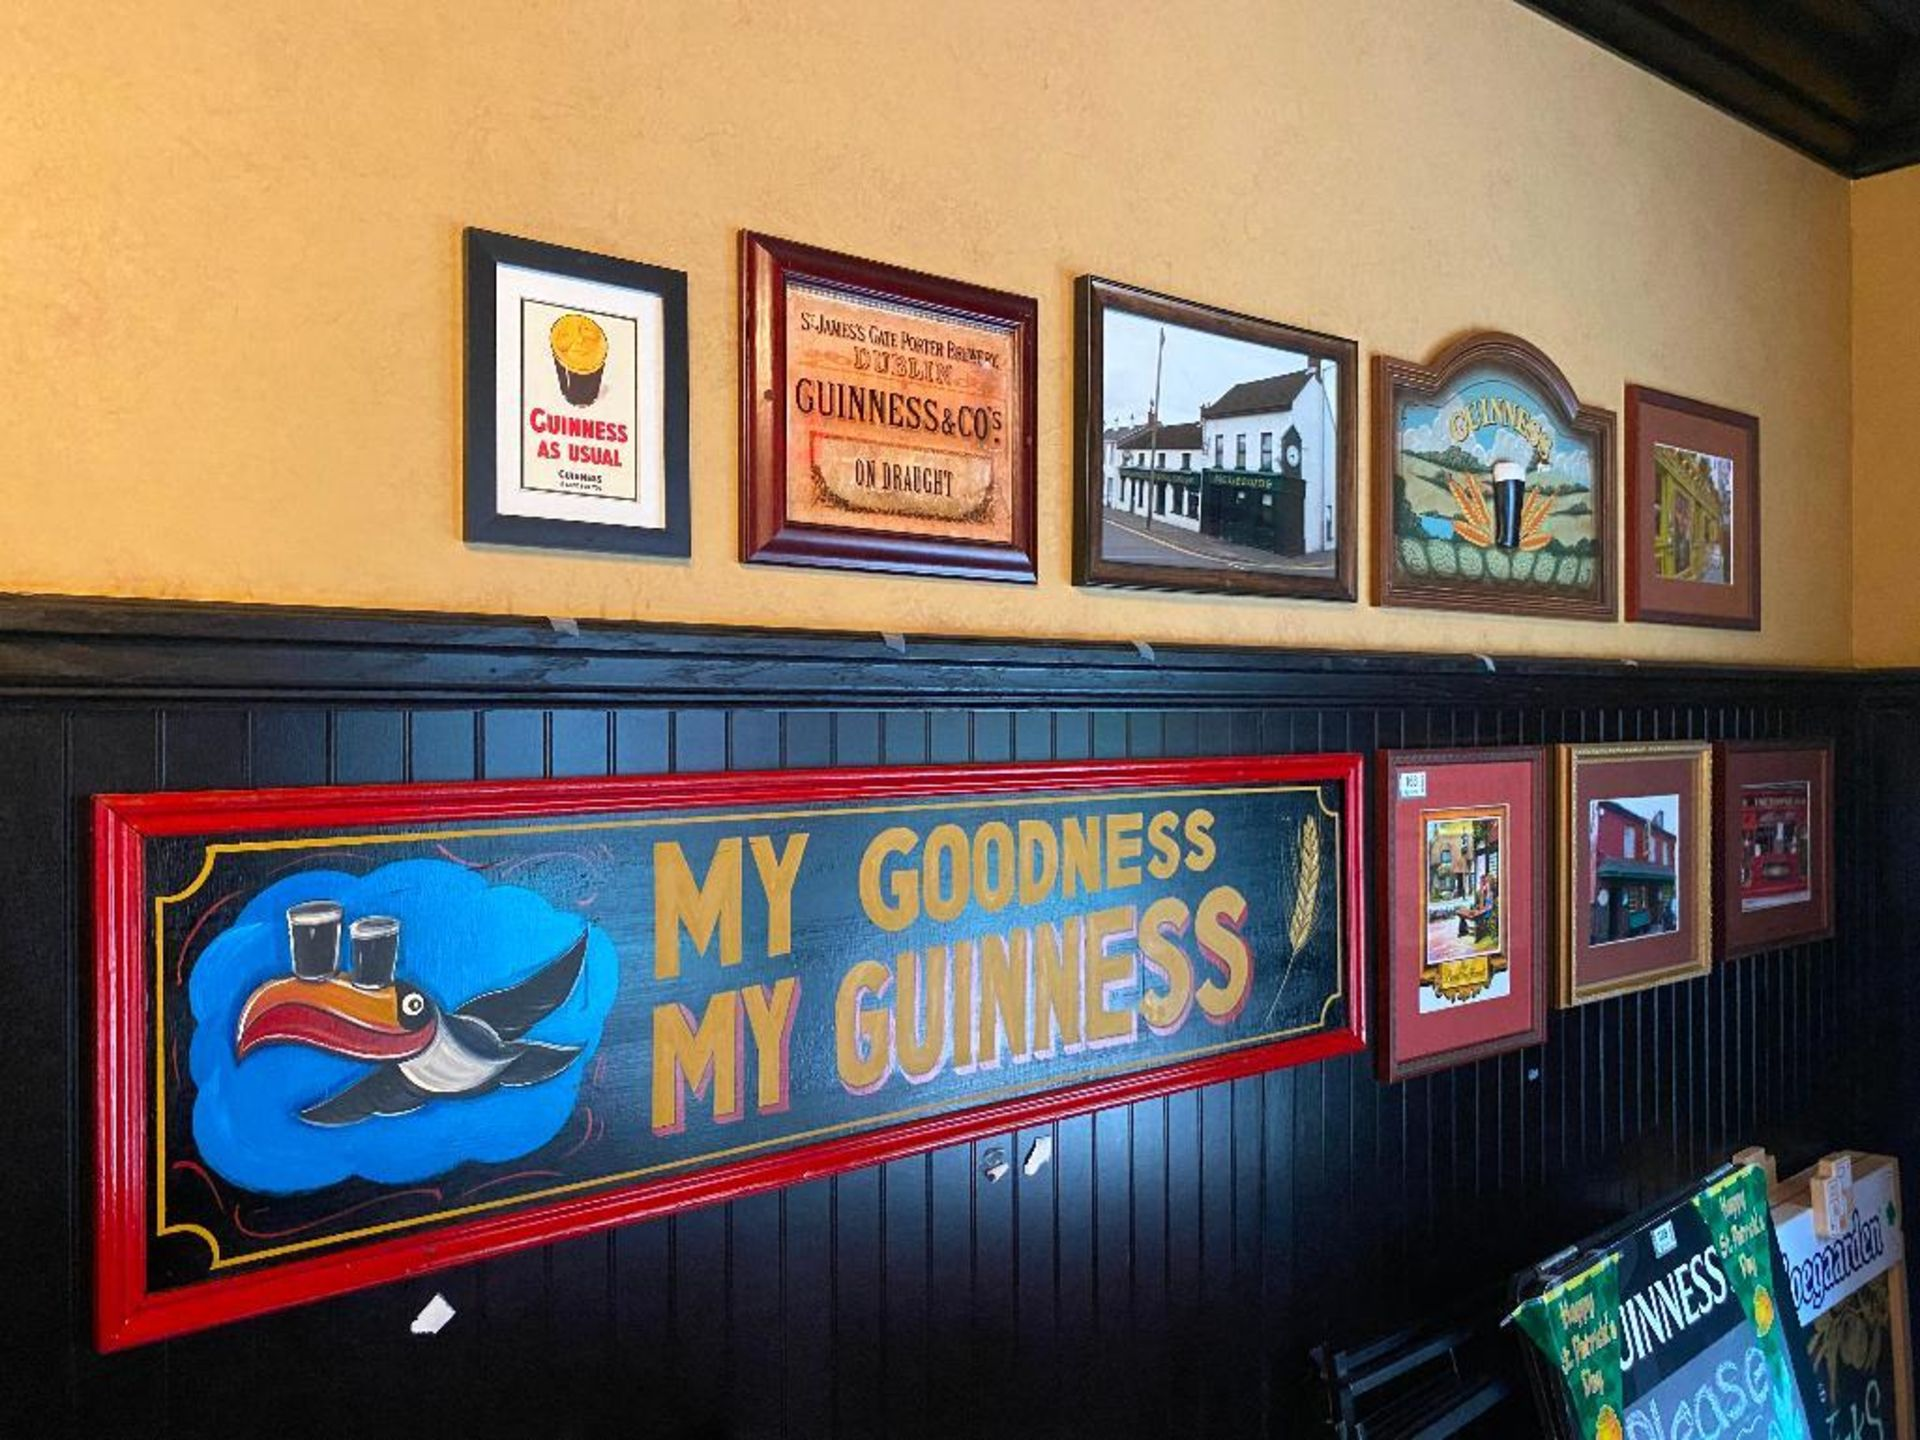 LOT OF (7) FRAMED MEMORABILIA PHOTOS & (2) WOODEN GUINNESS PLAQUES - NOTE REQUIRES REMOVAL FROM WALL